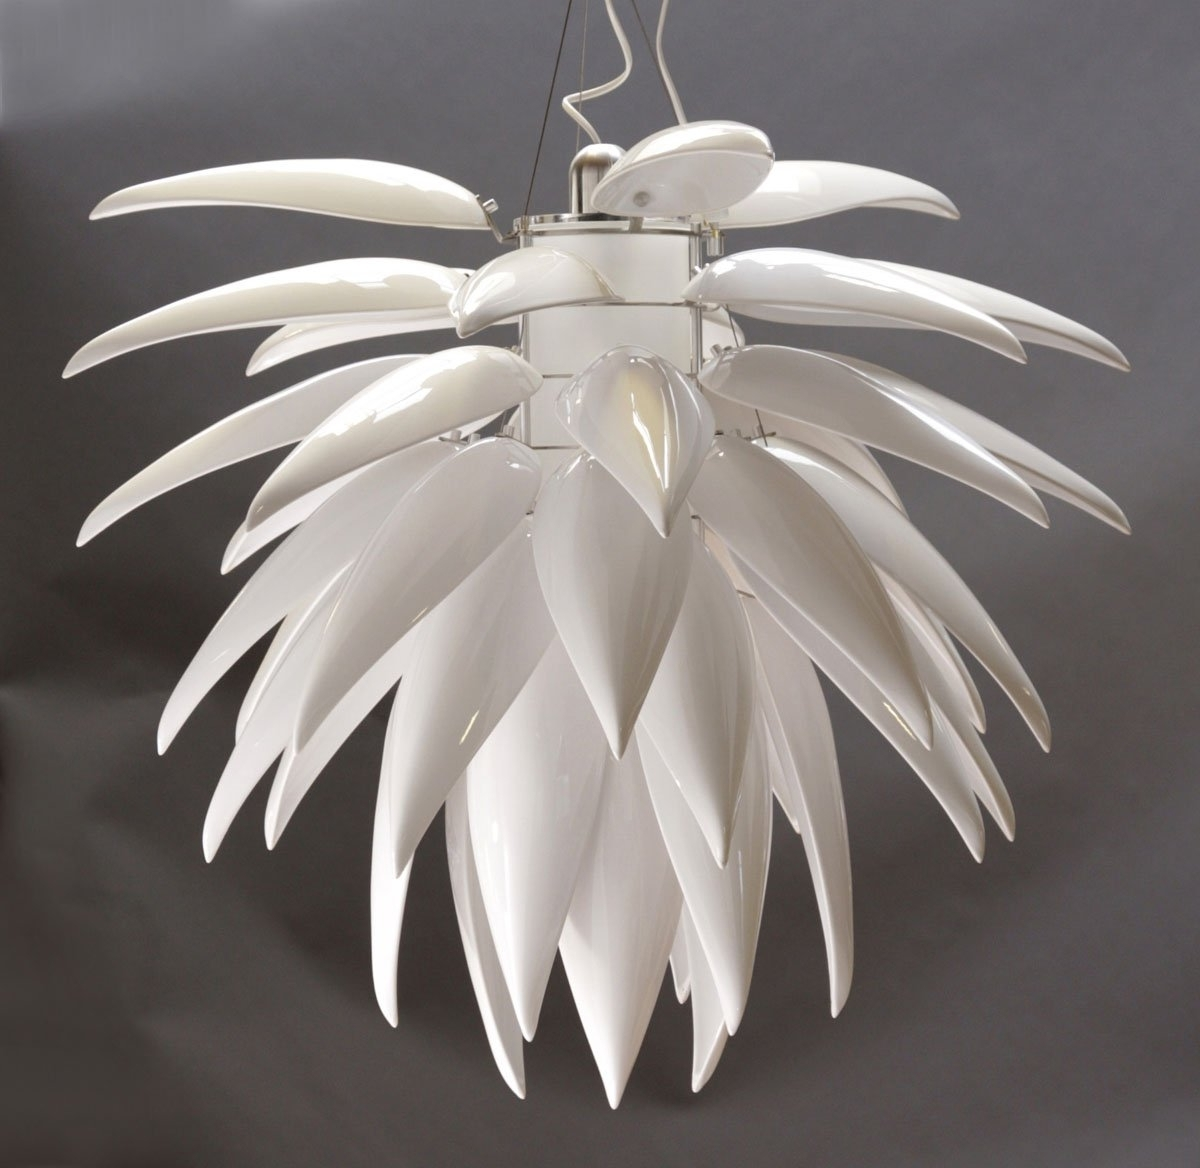 Ultra Modern Chandelier Regarding Preferred Contemporary Lighting Chandeliers White : Antique Contemporary (View 17 of 20)